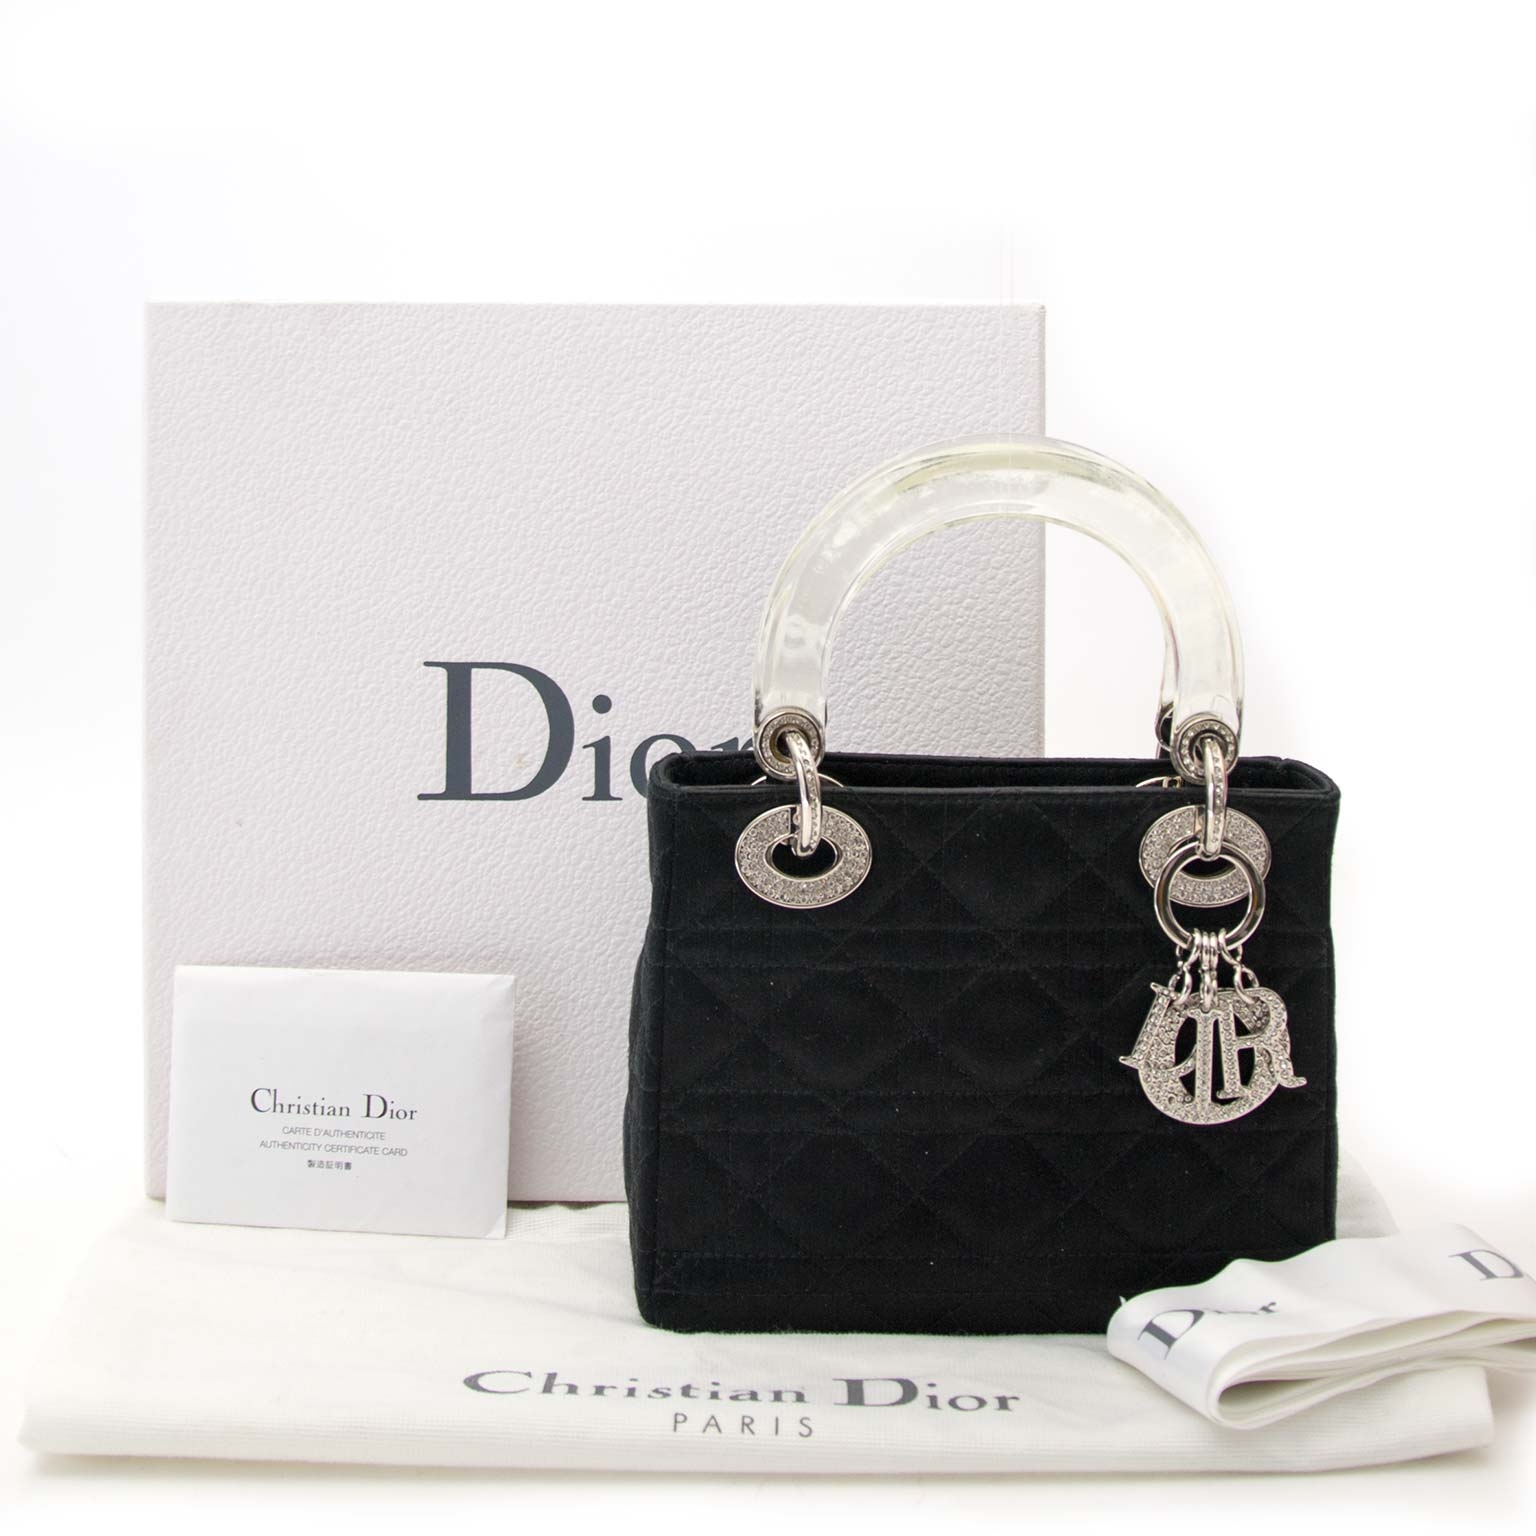 acheter en ligne seconde main Dior Lady Dior Mini Black Satin With Crystals